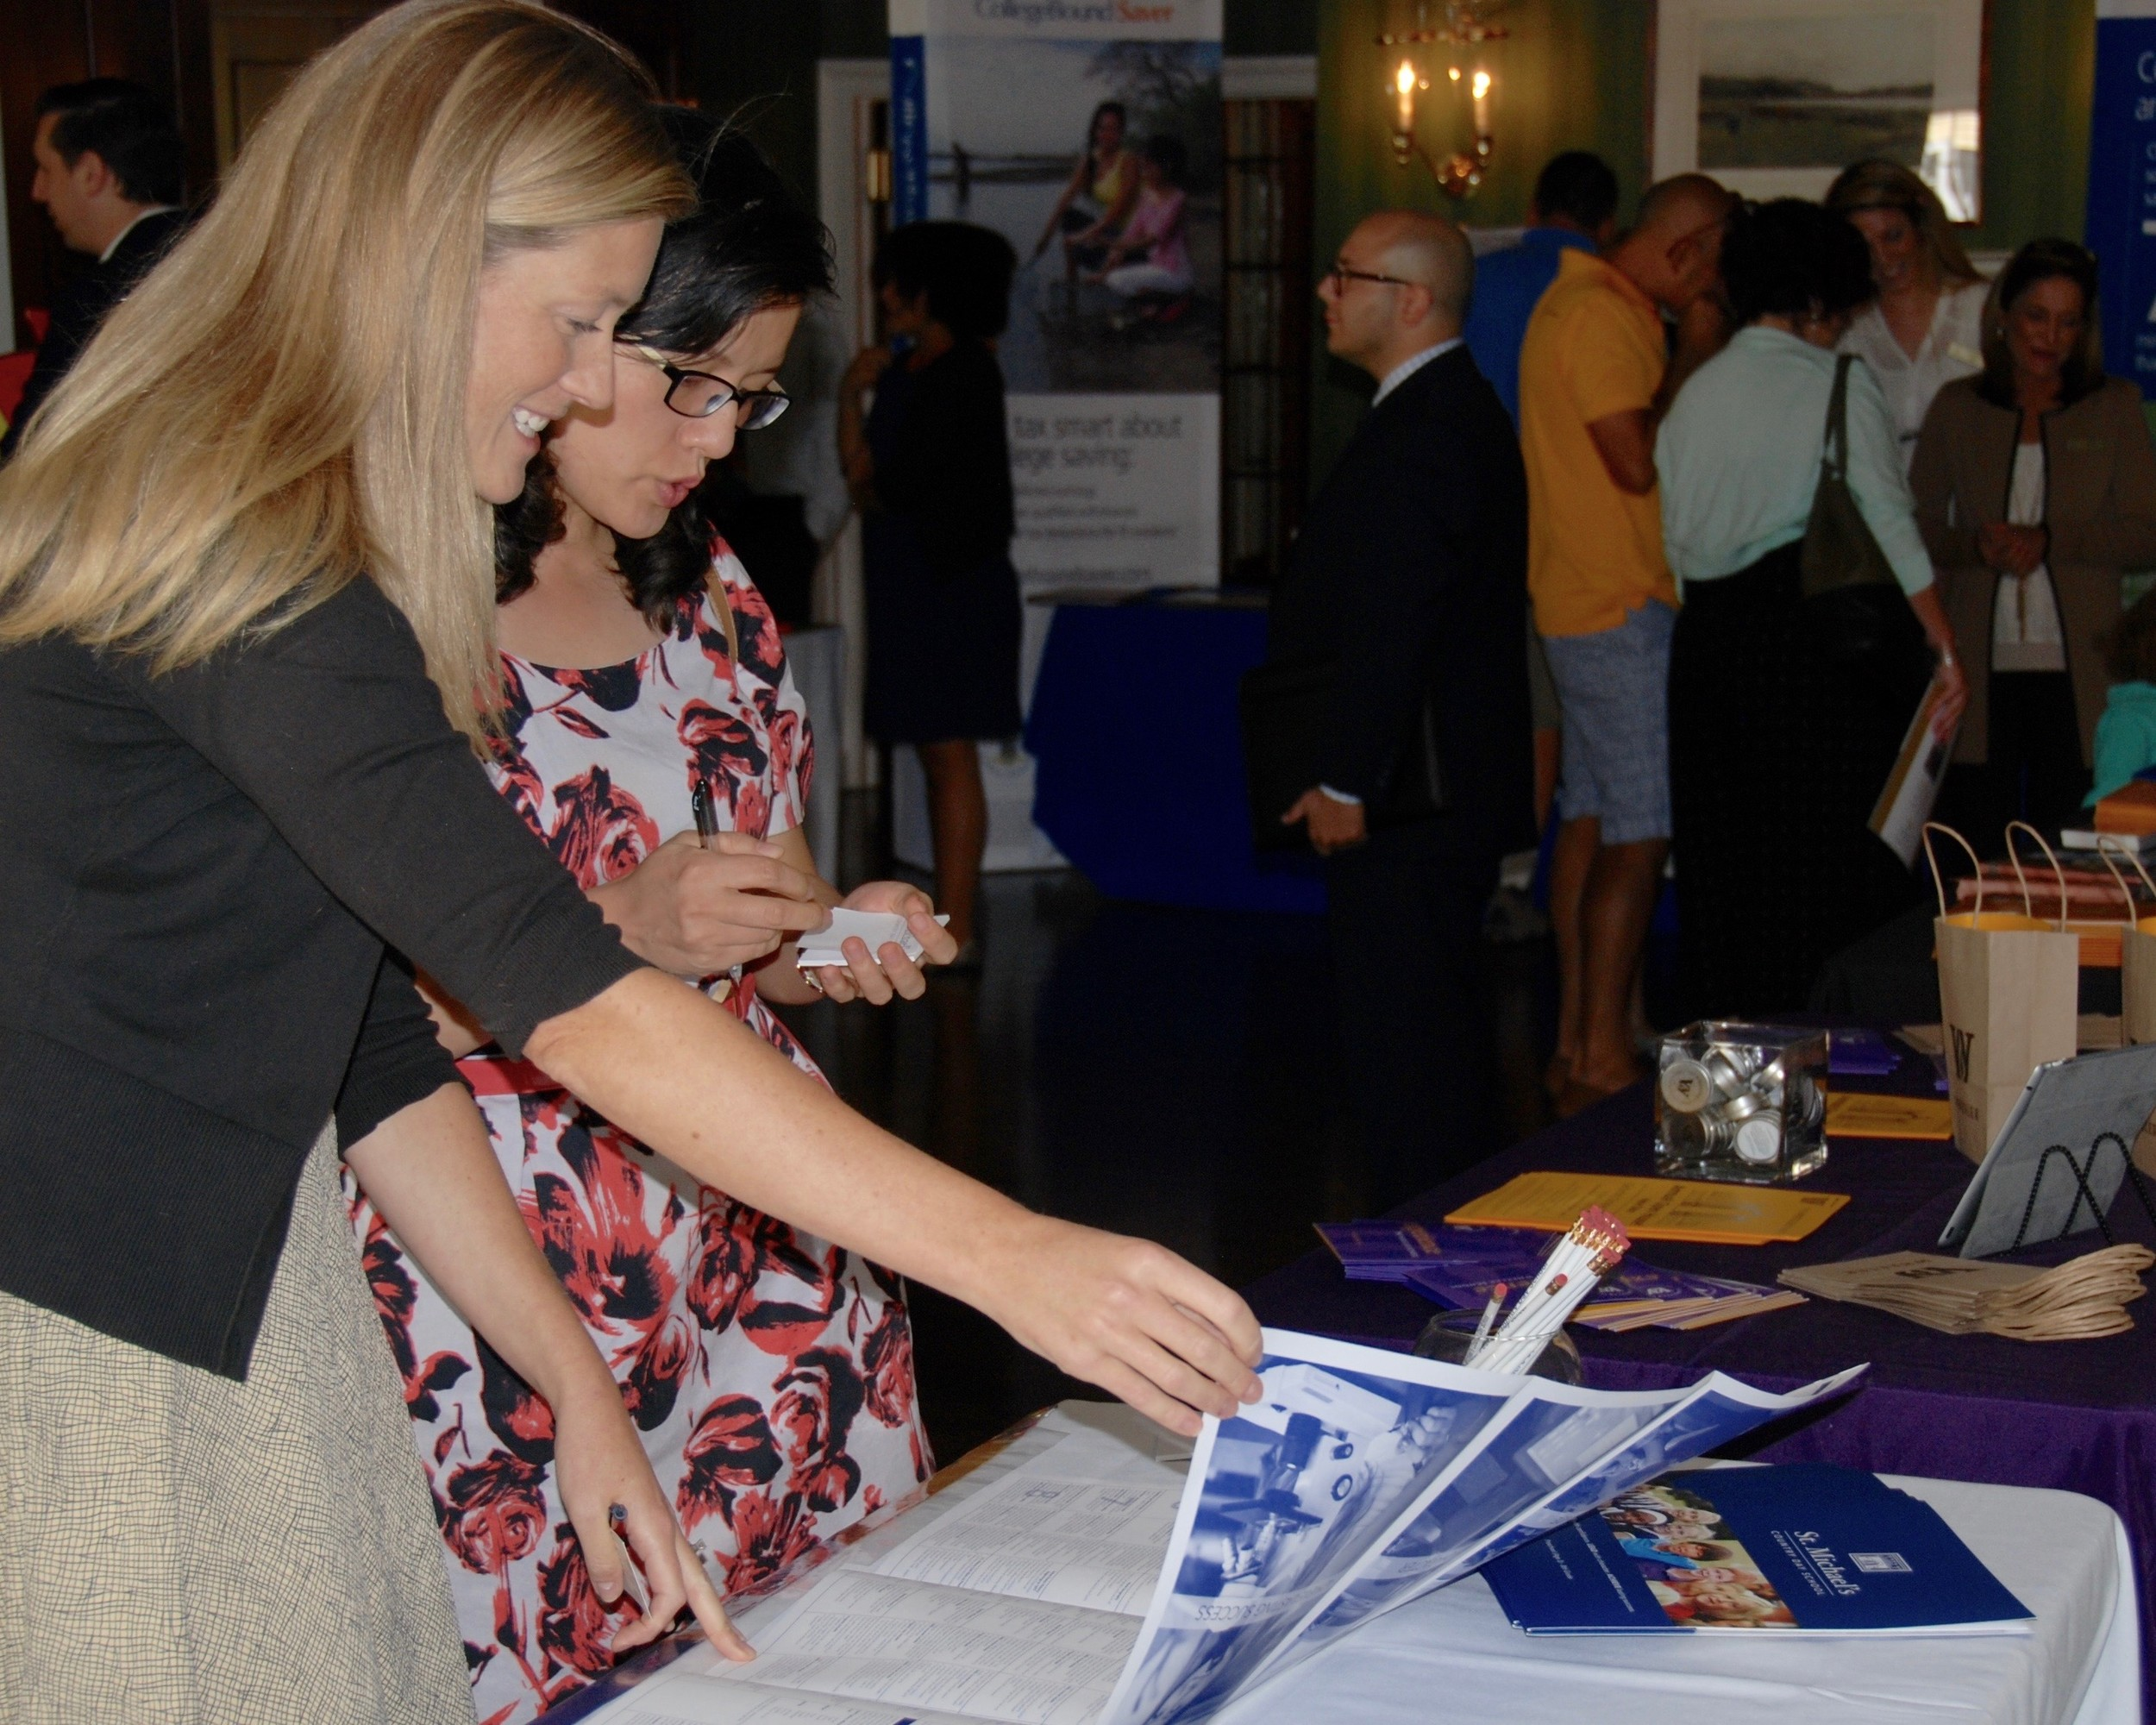 Guests at the RIPS Fair have have the chance to learn more about several schools in one convenient visit.